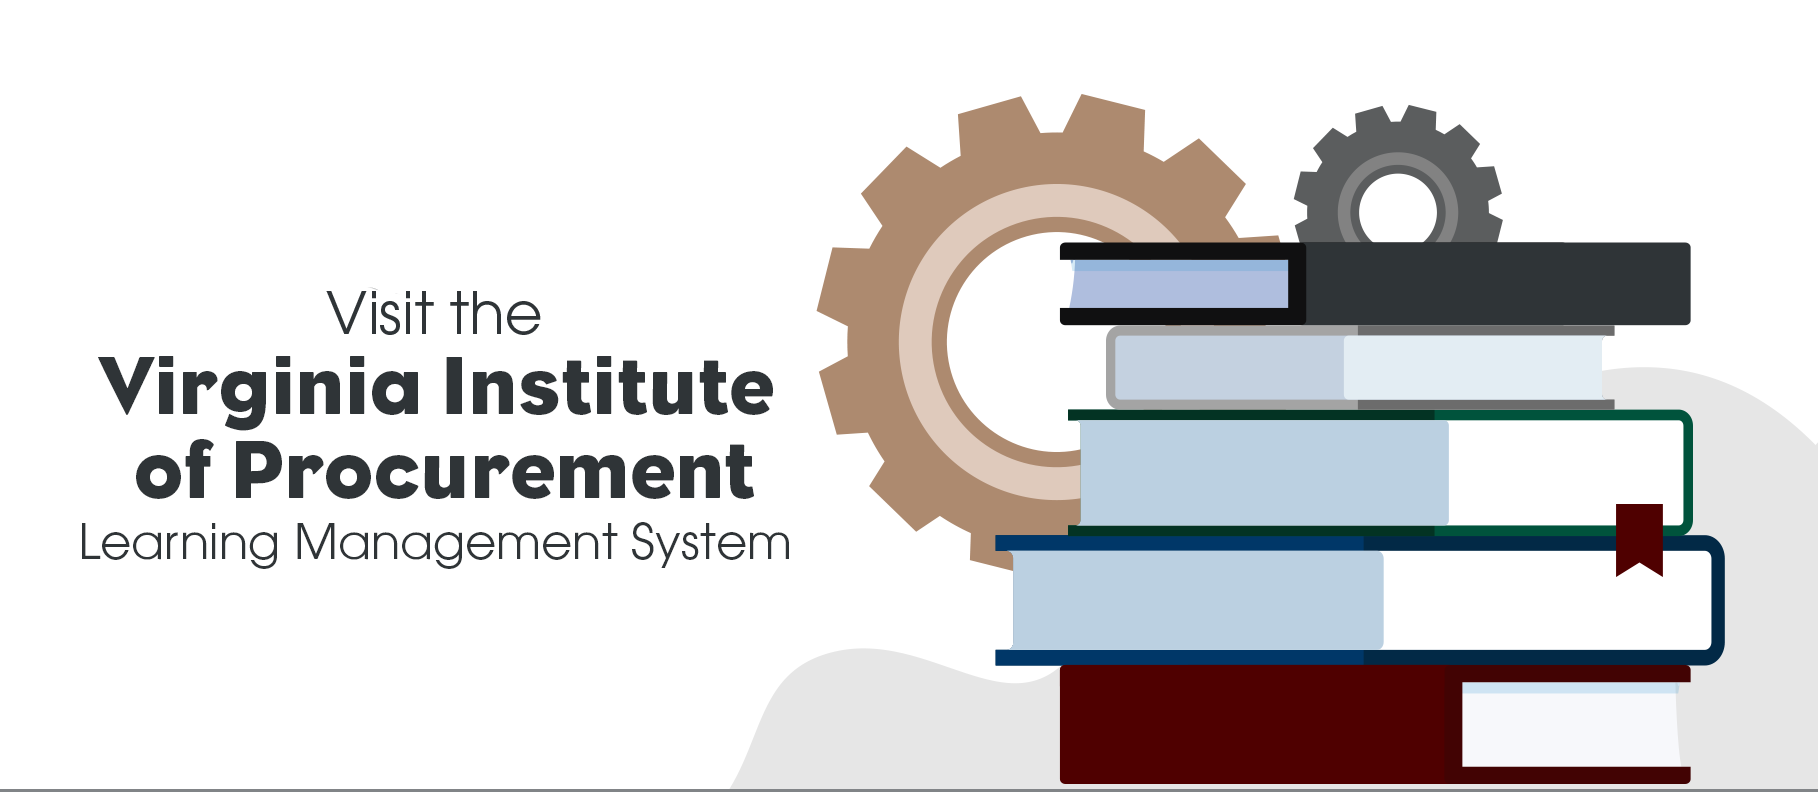 Virginia Institute of Procurement Learning Management System